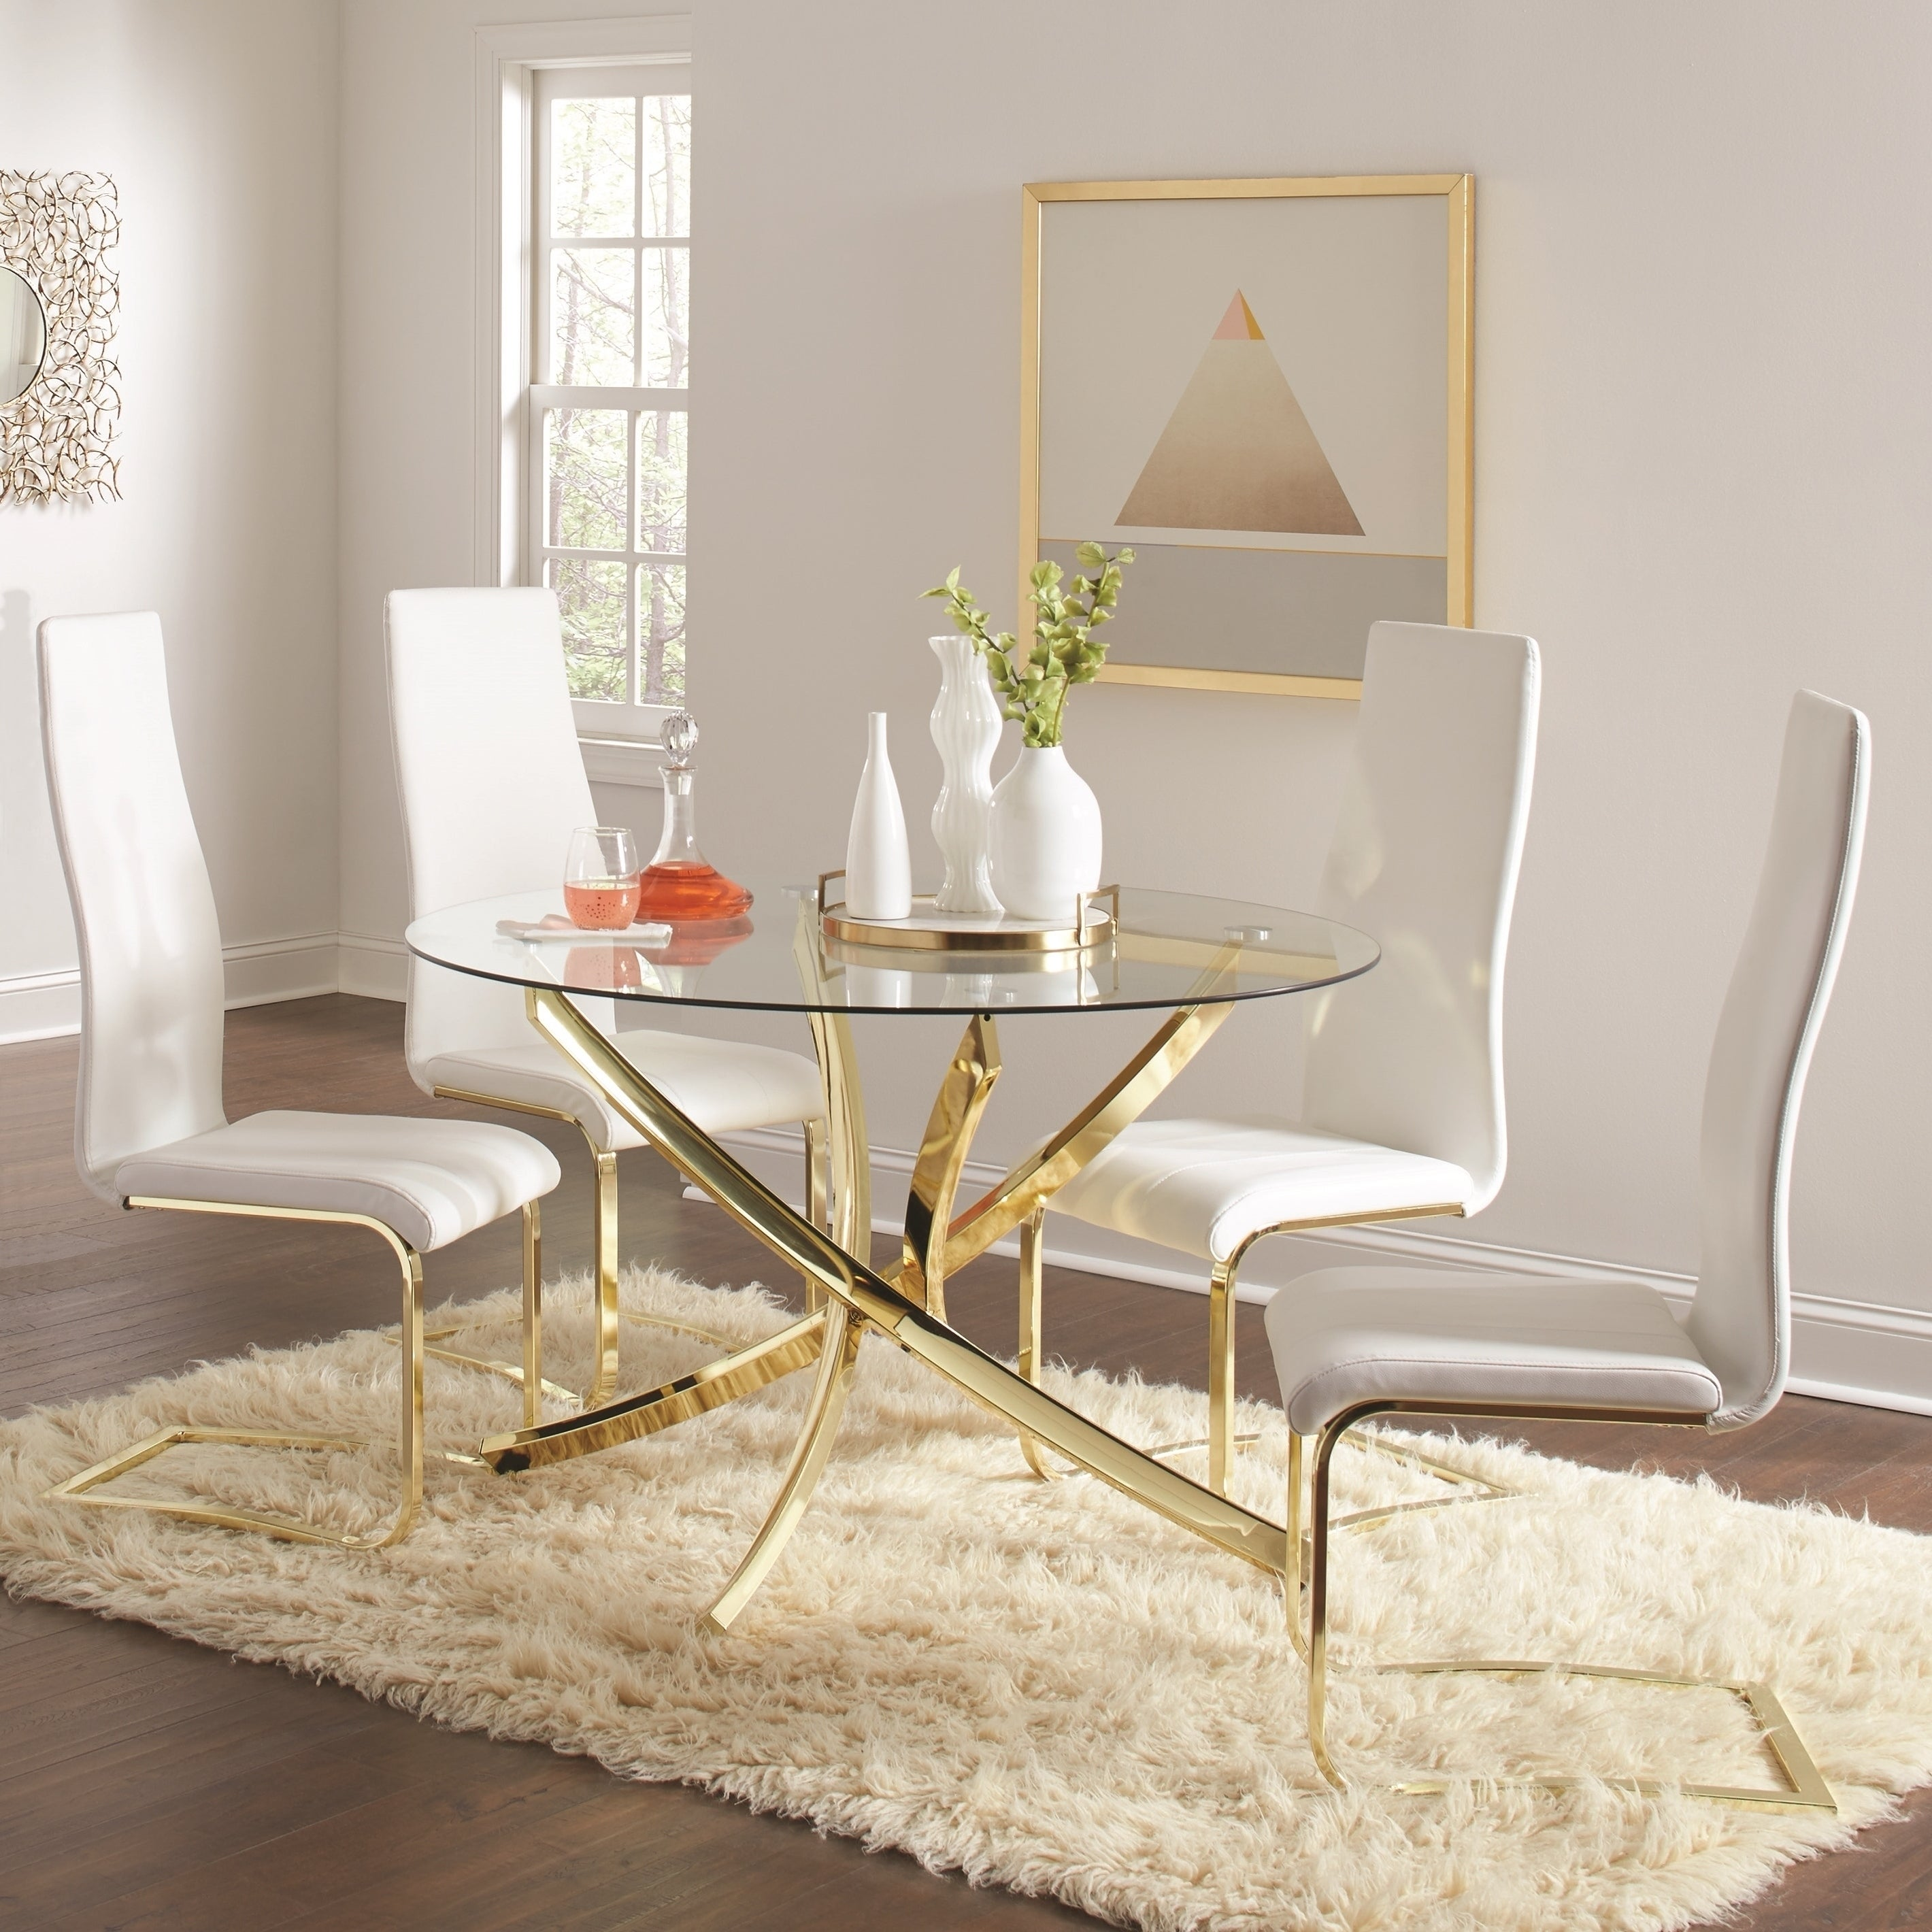 Glass Top Gold Metal Base Leatherette Chairs Modern 5 Piece Dining Set On Sale Overstock 26885919